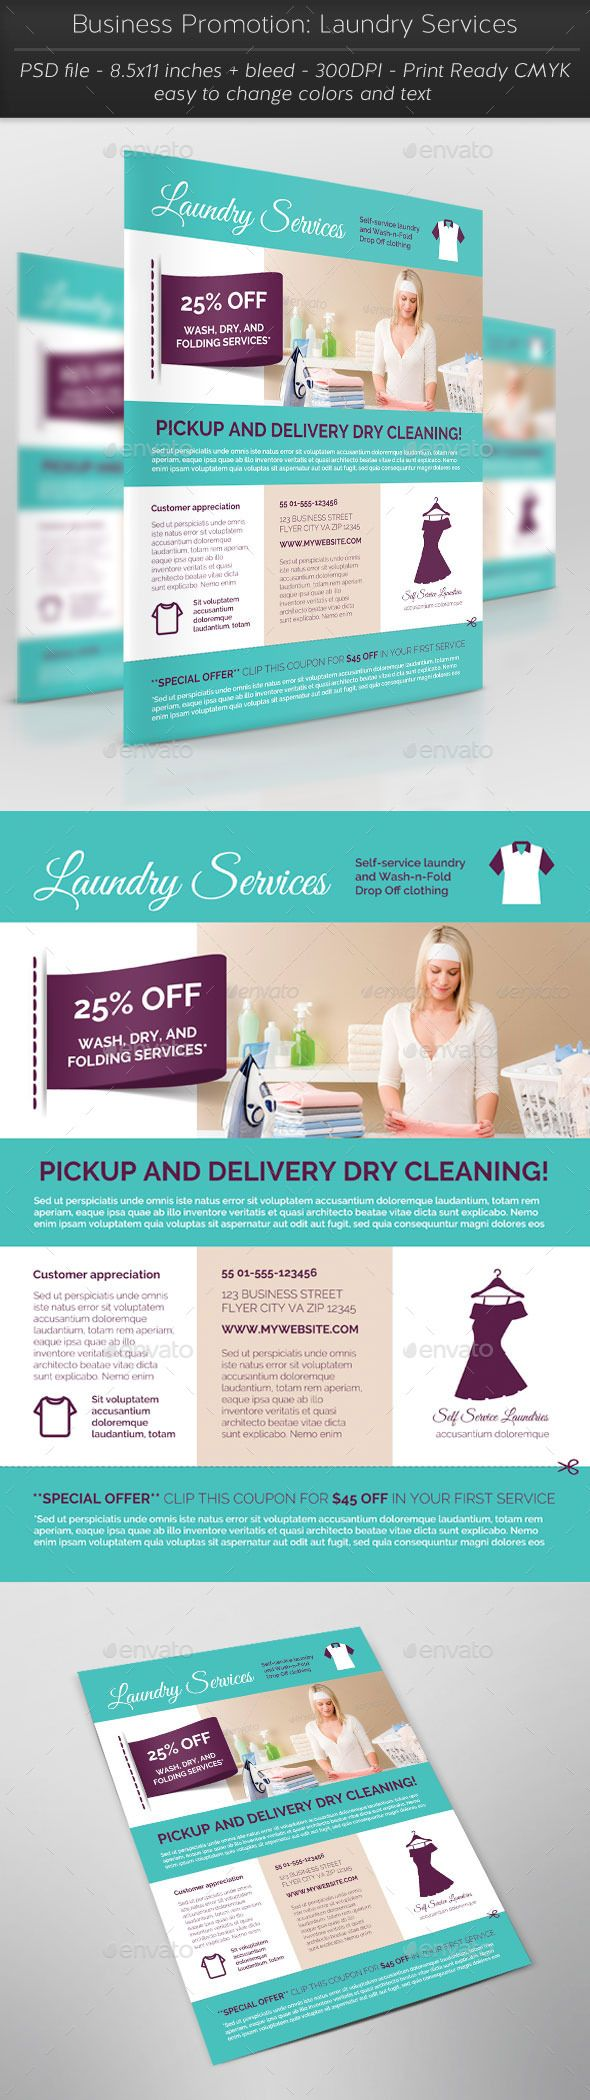 Business Promotion: Laundry Services